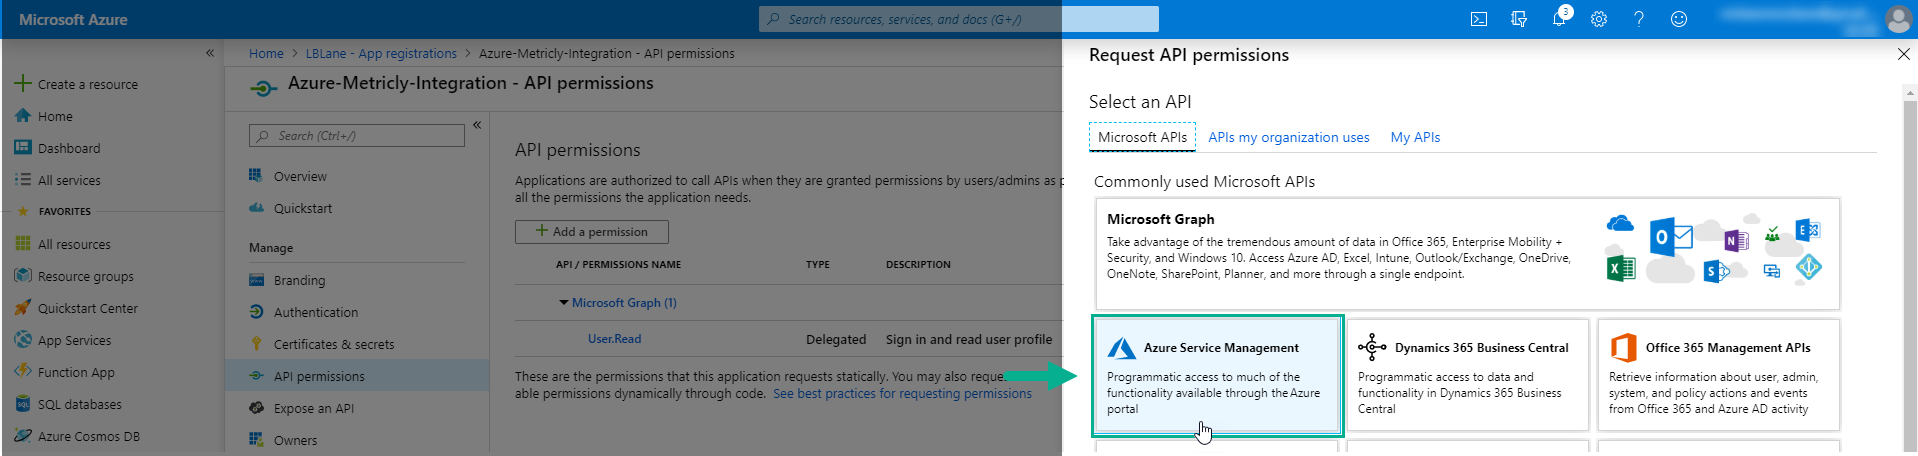 azure-service-management